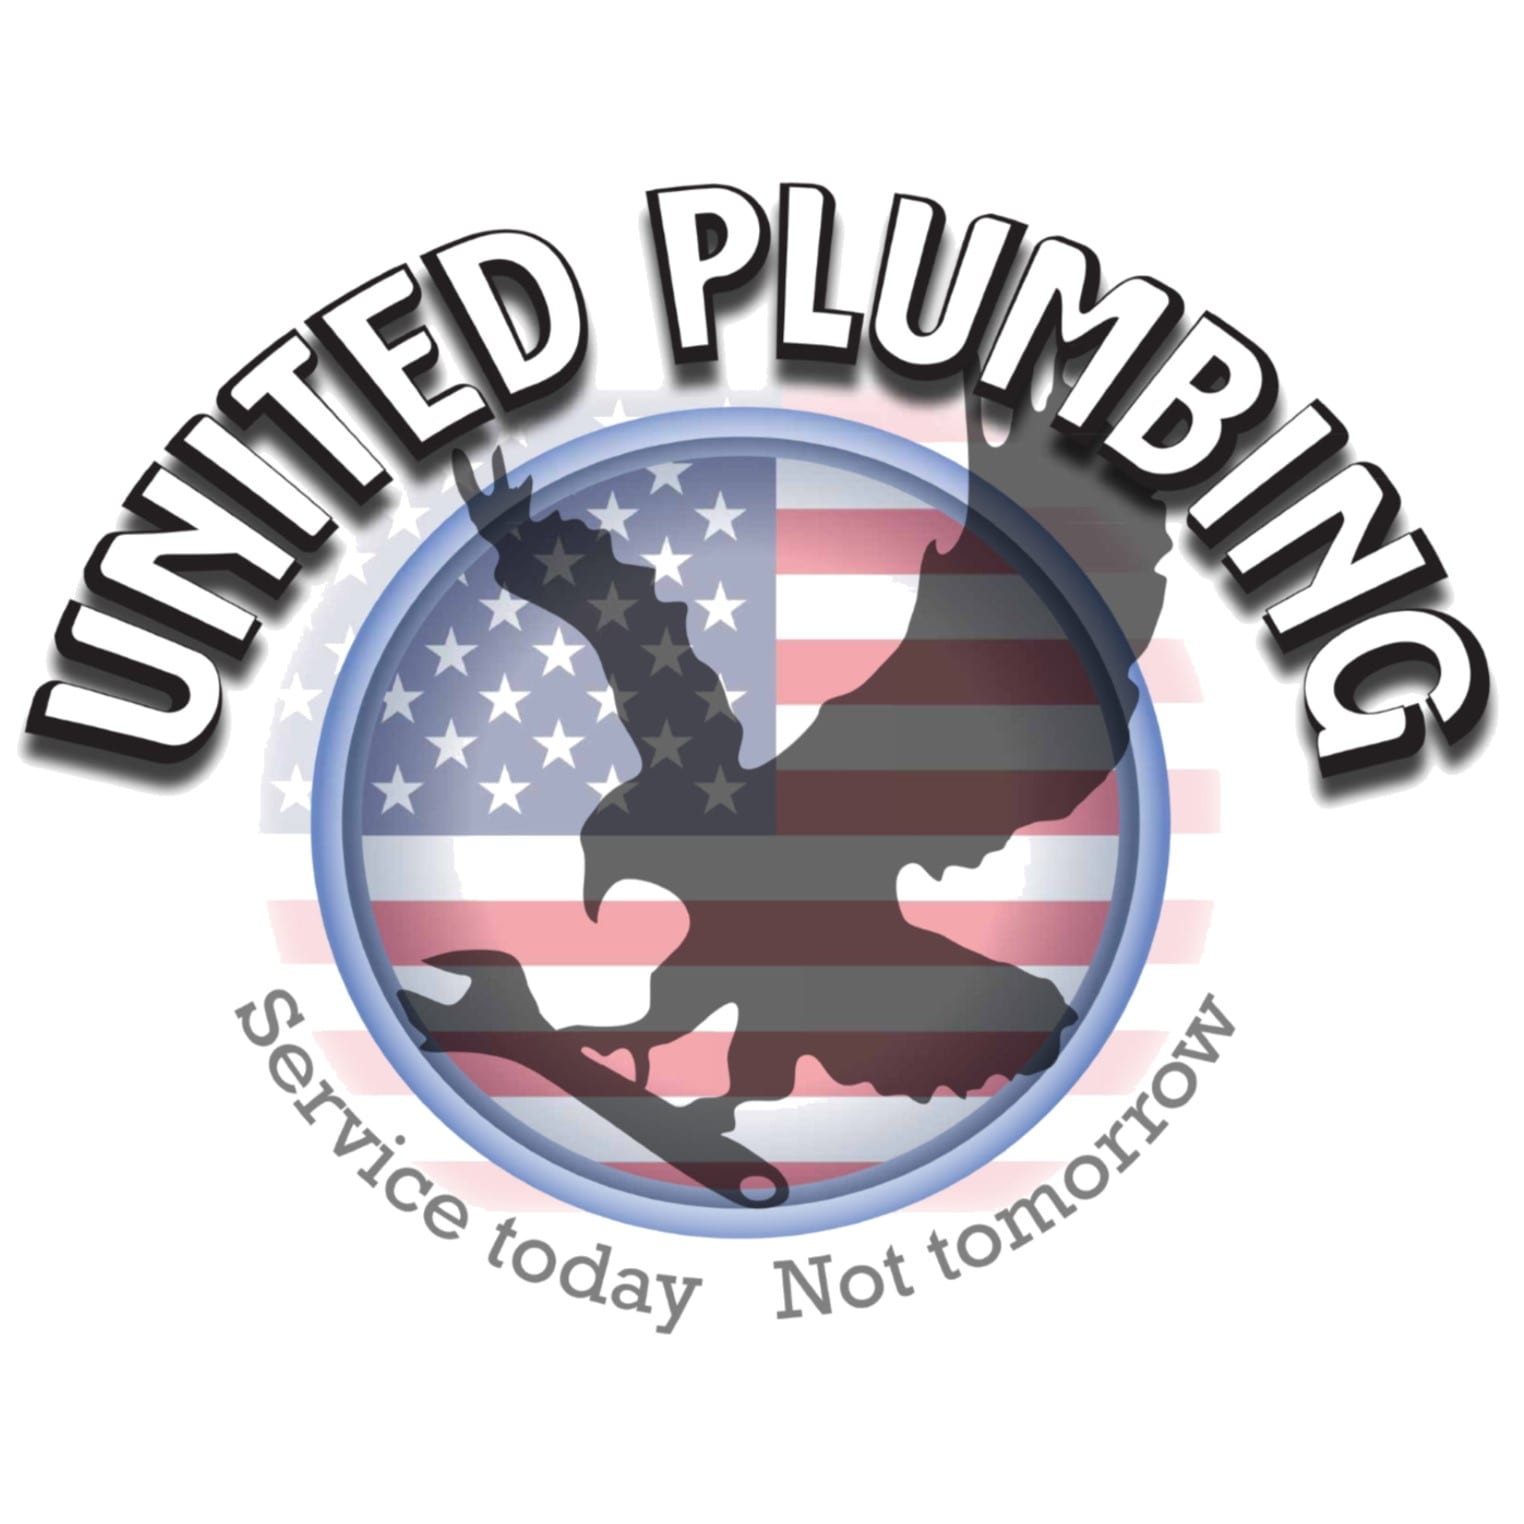 Calibrate Digital Marketing Client - United Plumbing